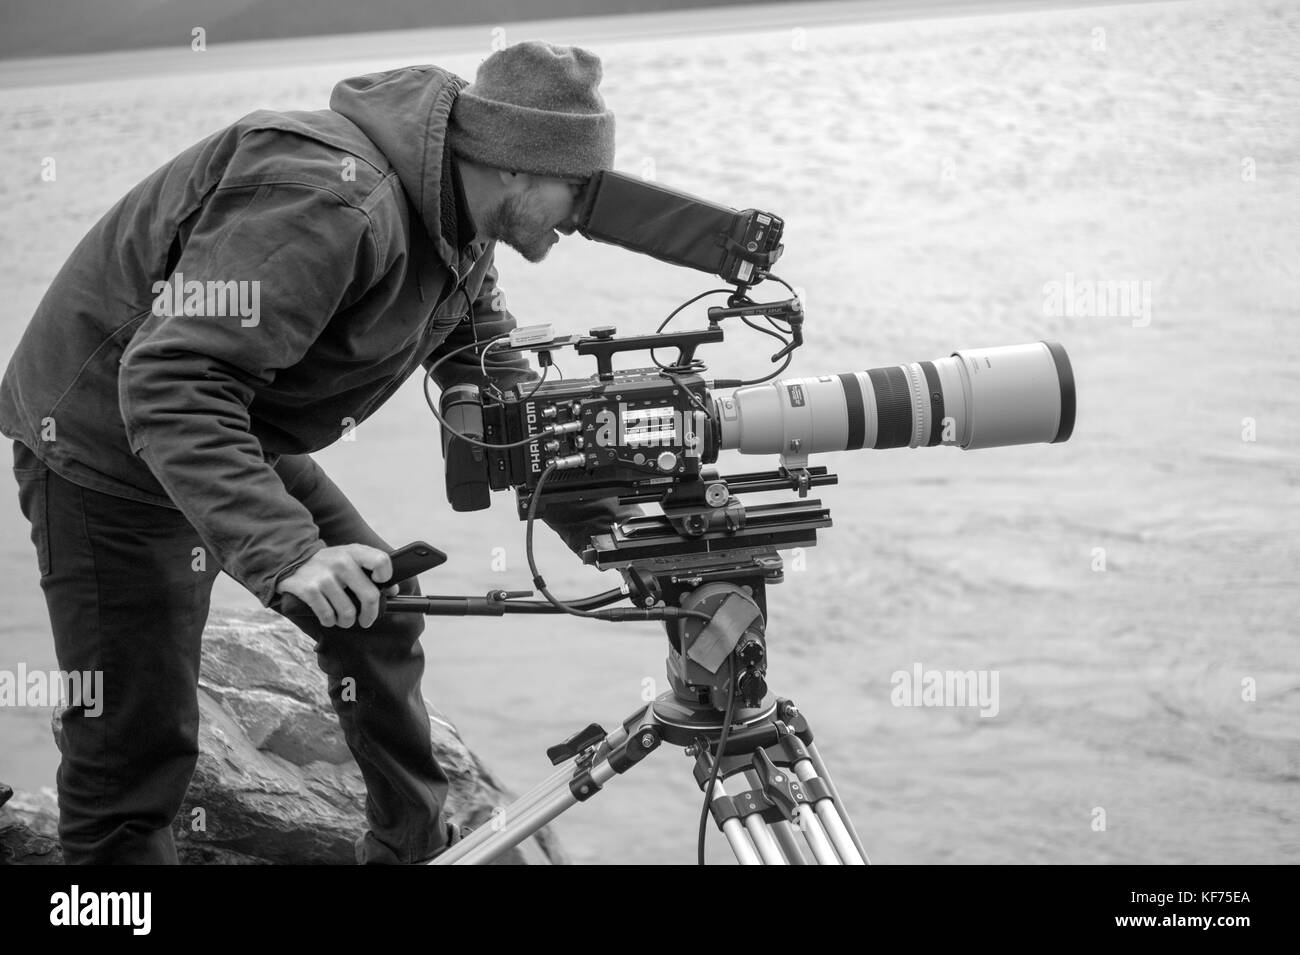 Nick Sevander, DP. working with the Phantom 4K high speed videw camera for some specialized slow motion video of - Stock Image